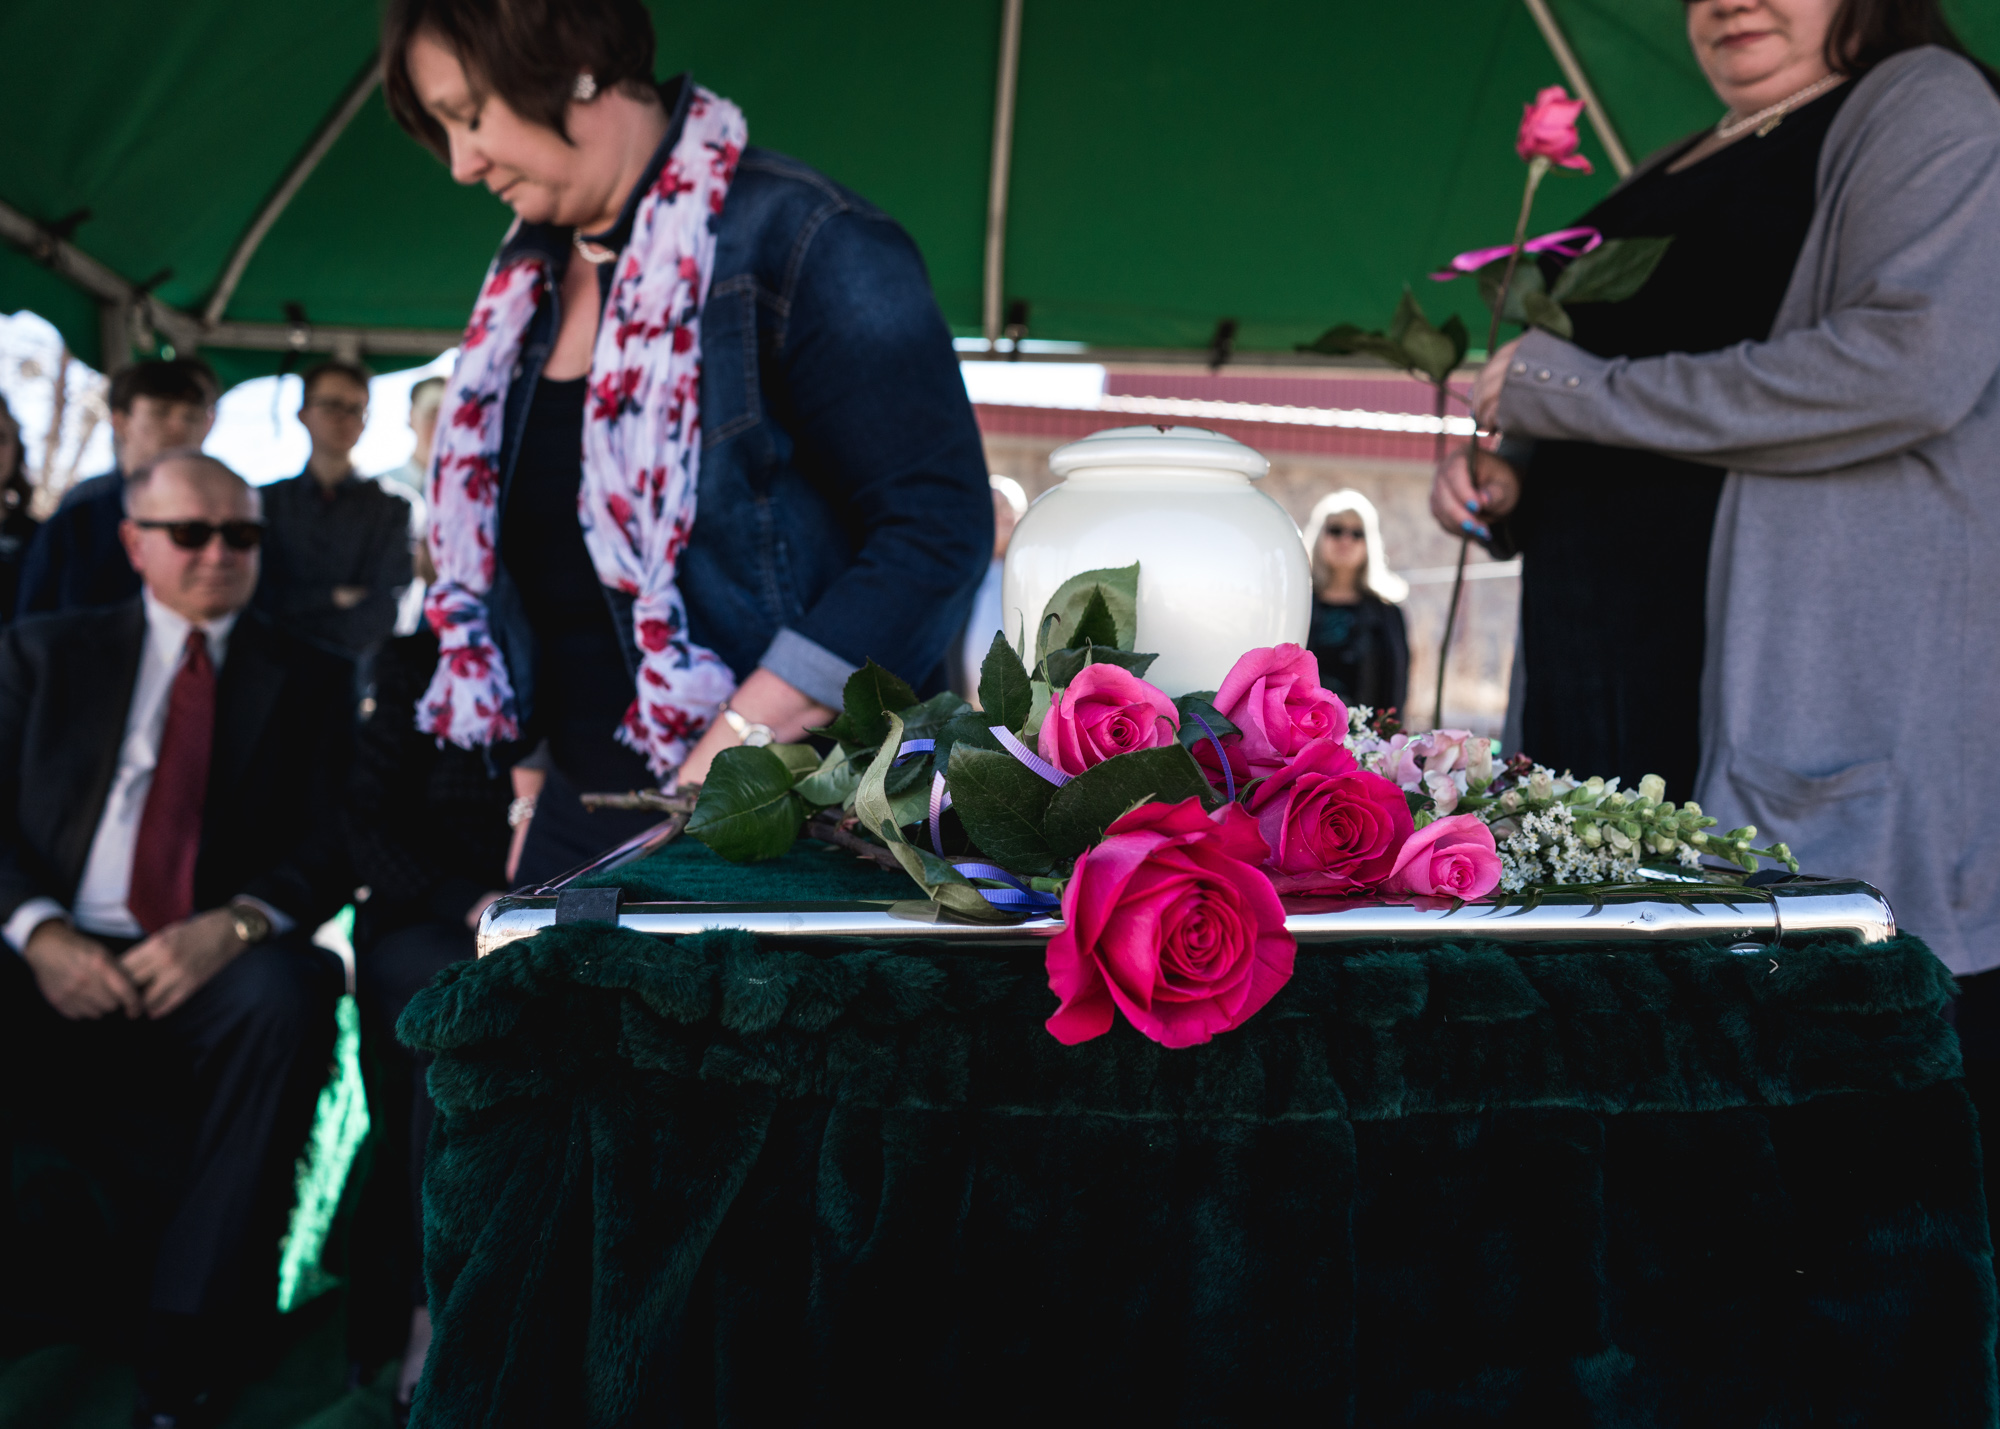 Family members place roses on the final resting place of their beloved family member during her memorial service at a cemetery in Greeley, Colorado